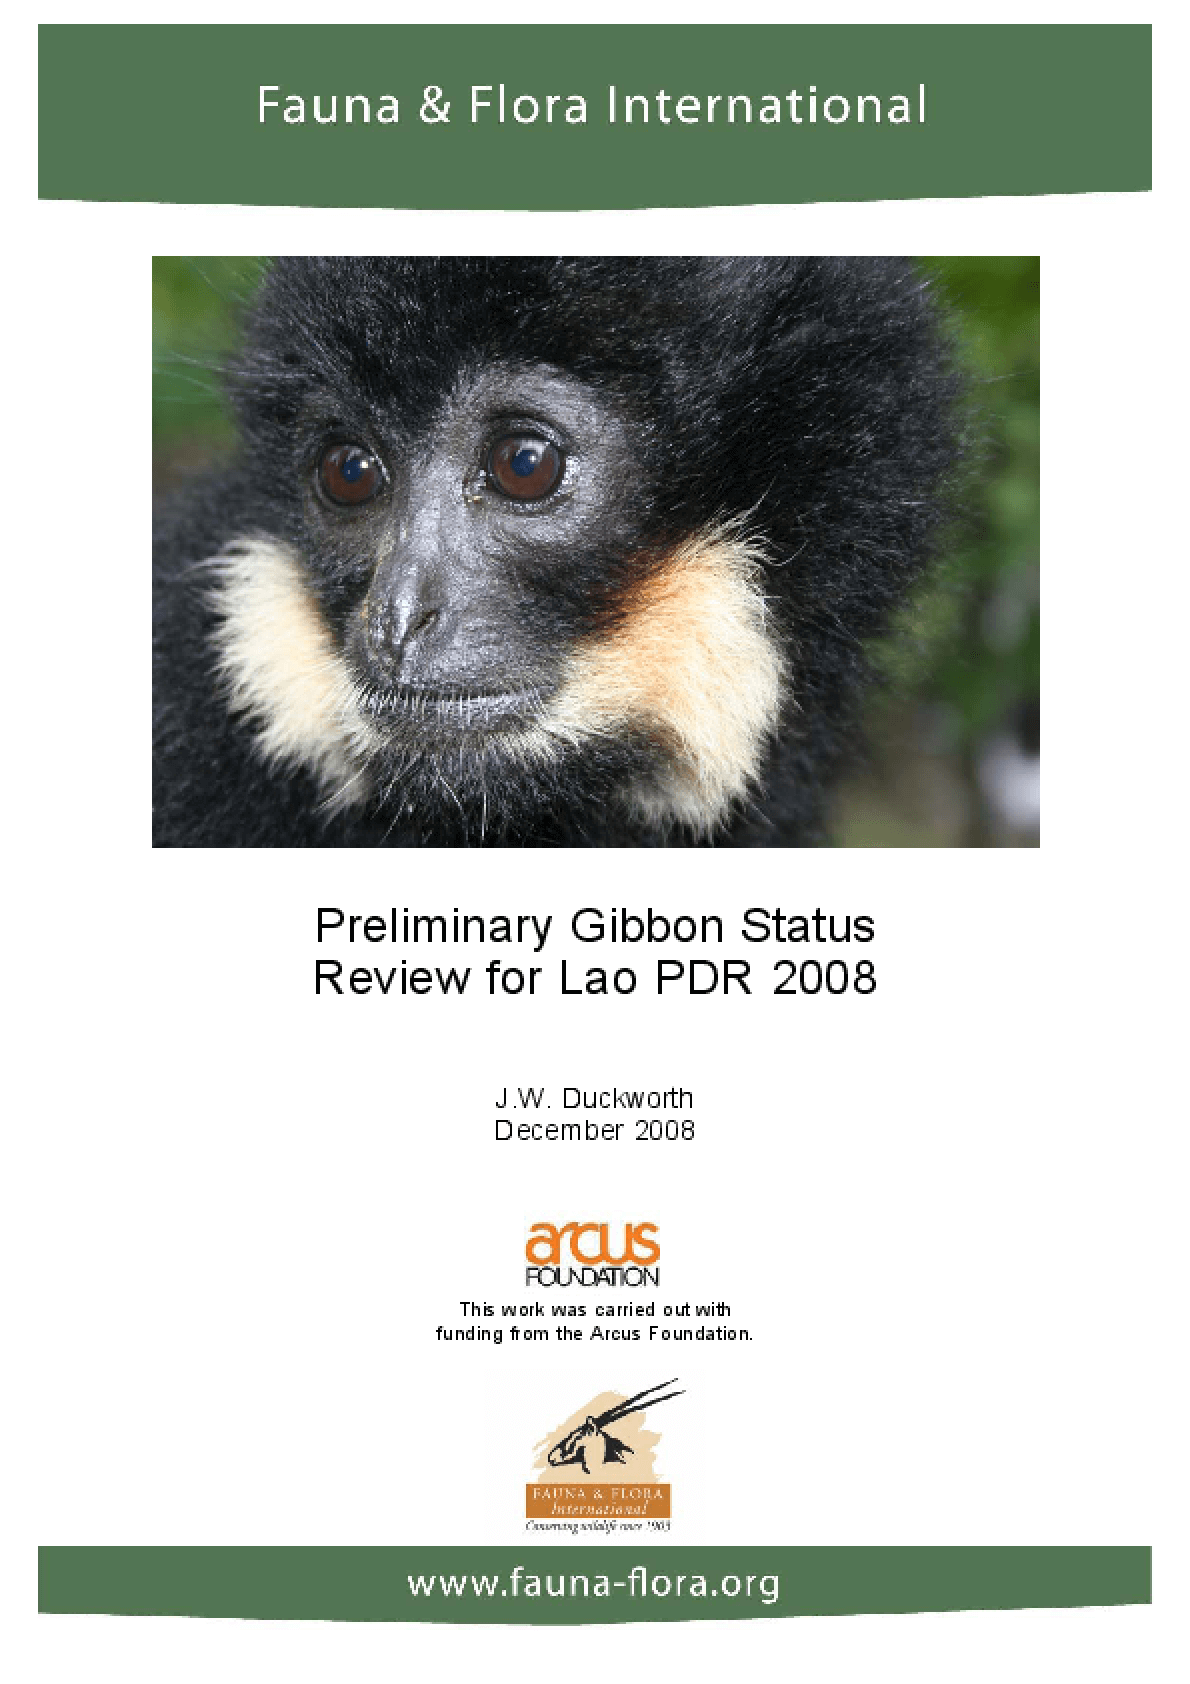 Preliminary Gibbon Status Review for Lao PDR 2008